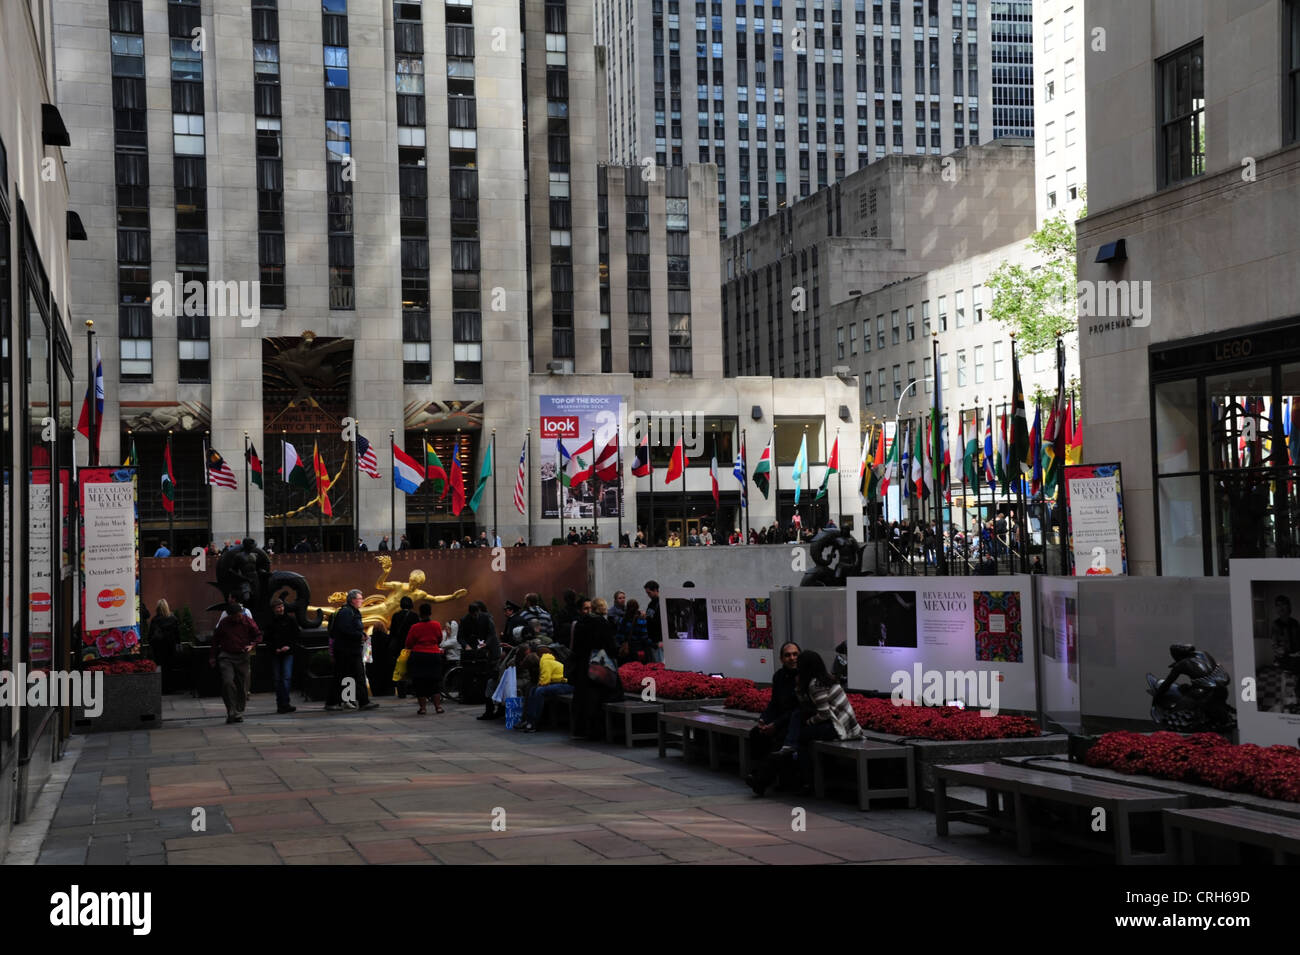 View of people and 'Revealing Mexico Week' artwork displays, towards GE Building, Channel Gardens, Rockefeller Centre, Stock Photo